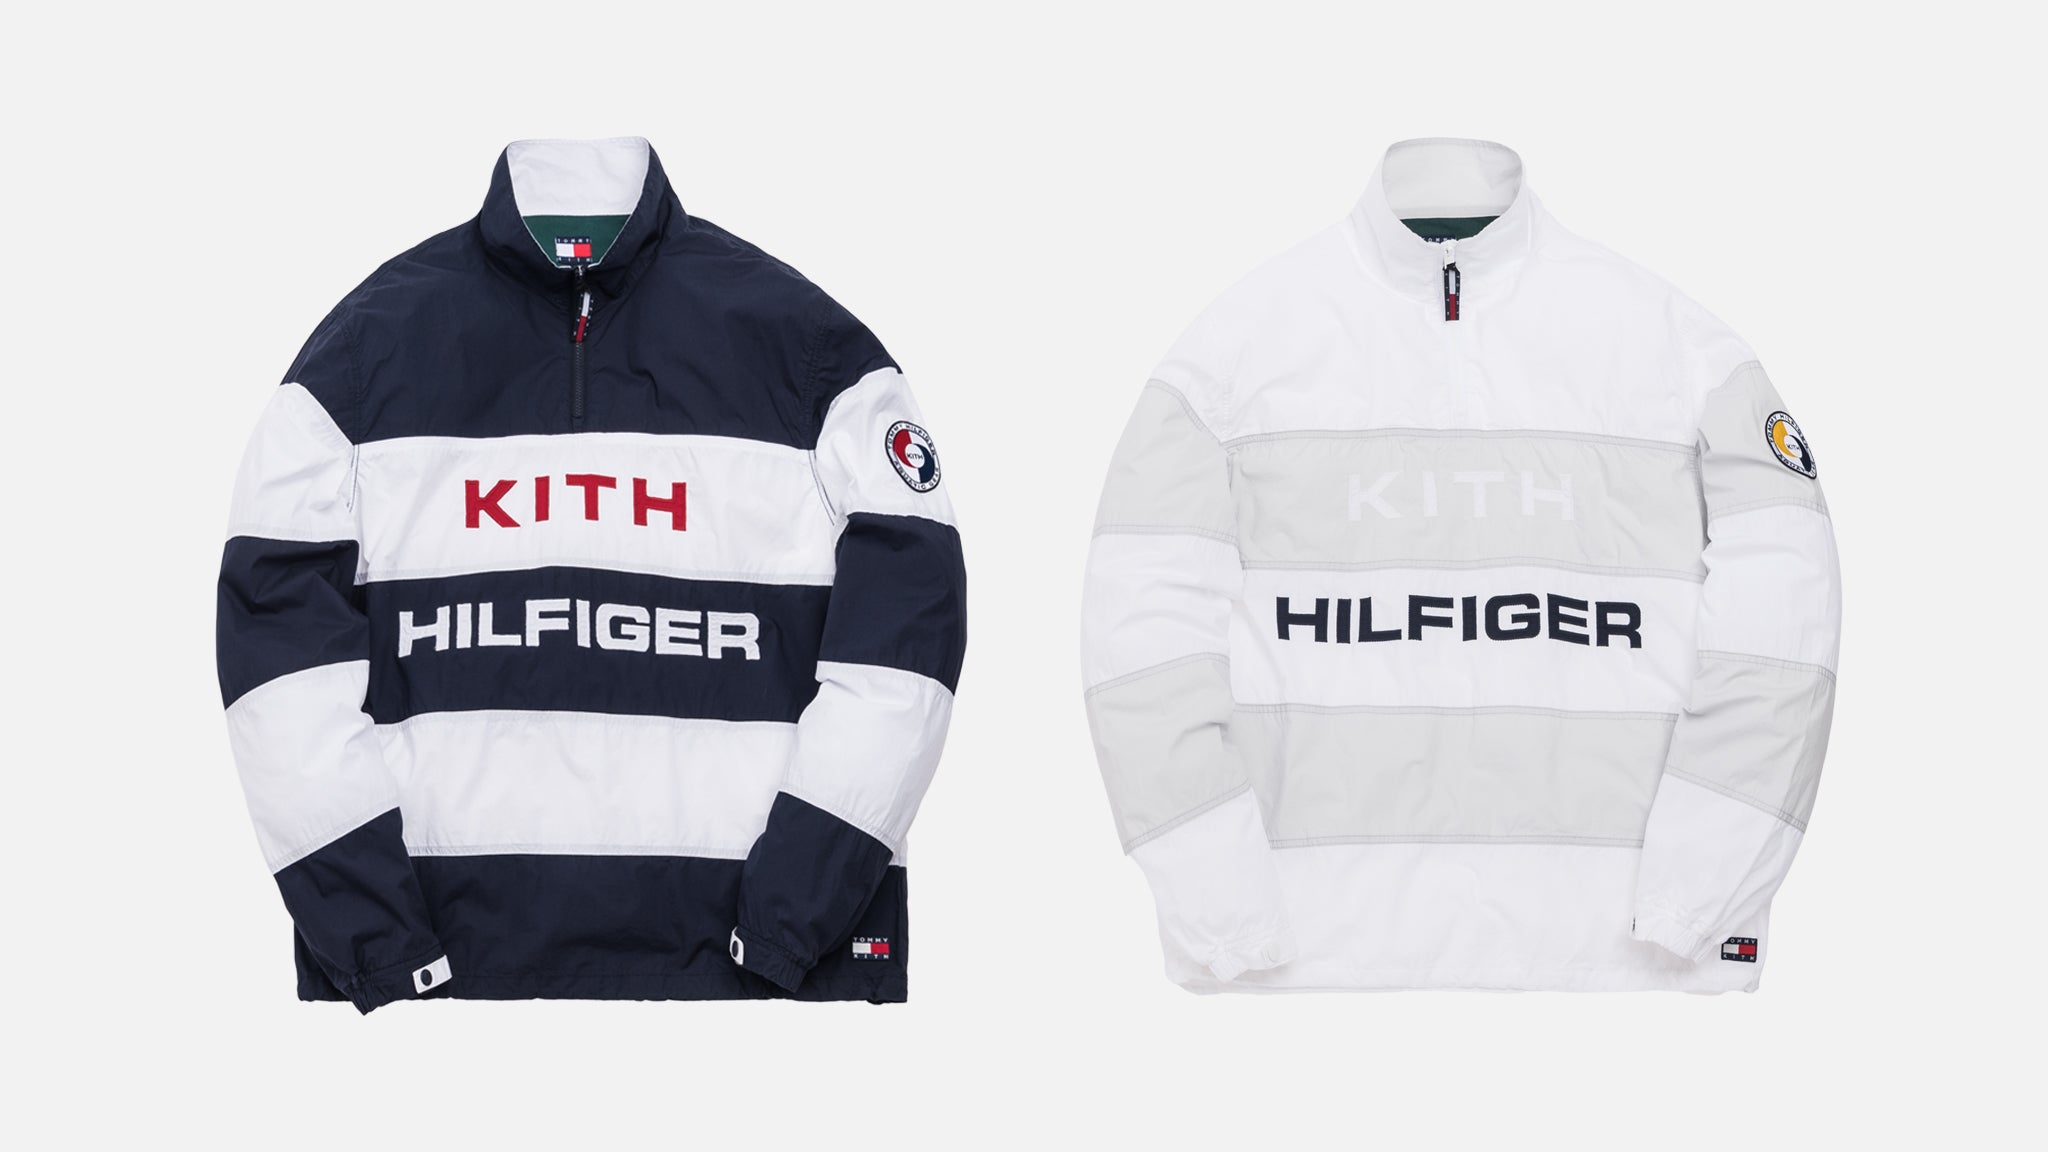 kith tommy hilfiger prices